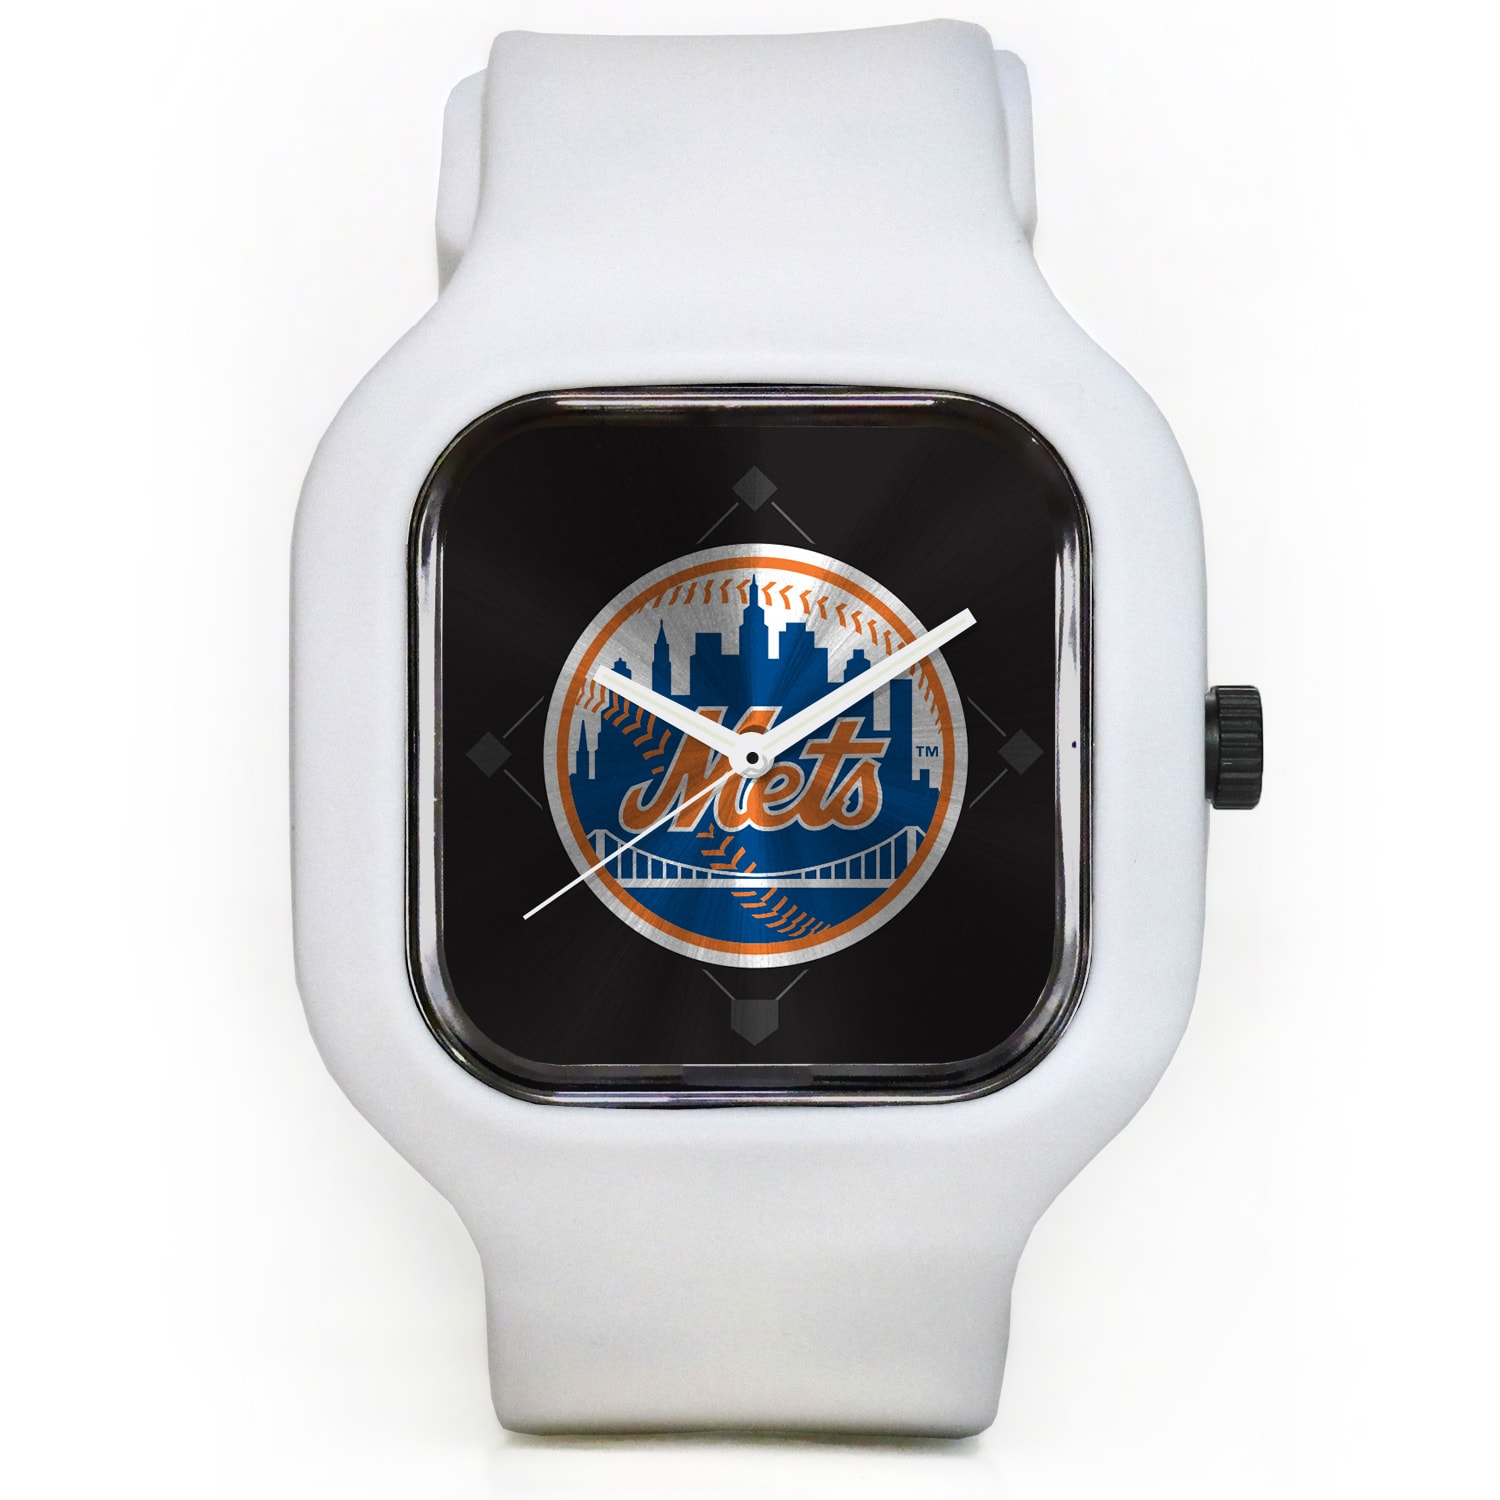 New York Mets Modify Watches Unisex Silicone Watch - White